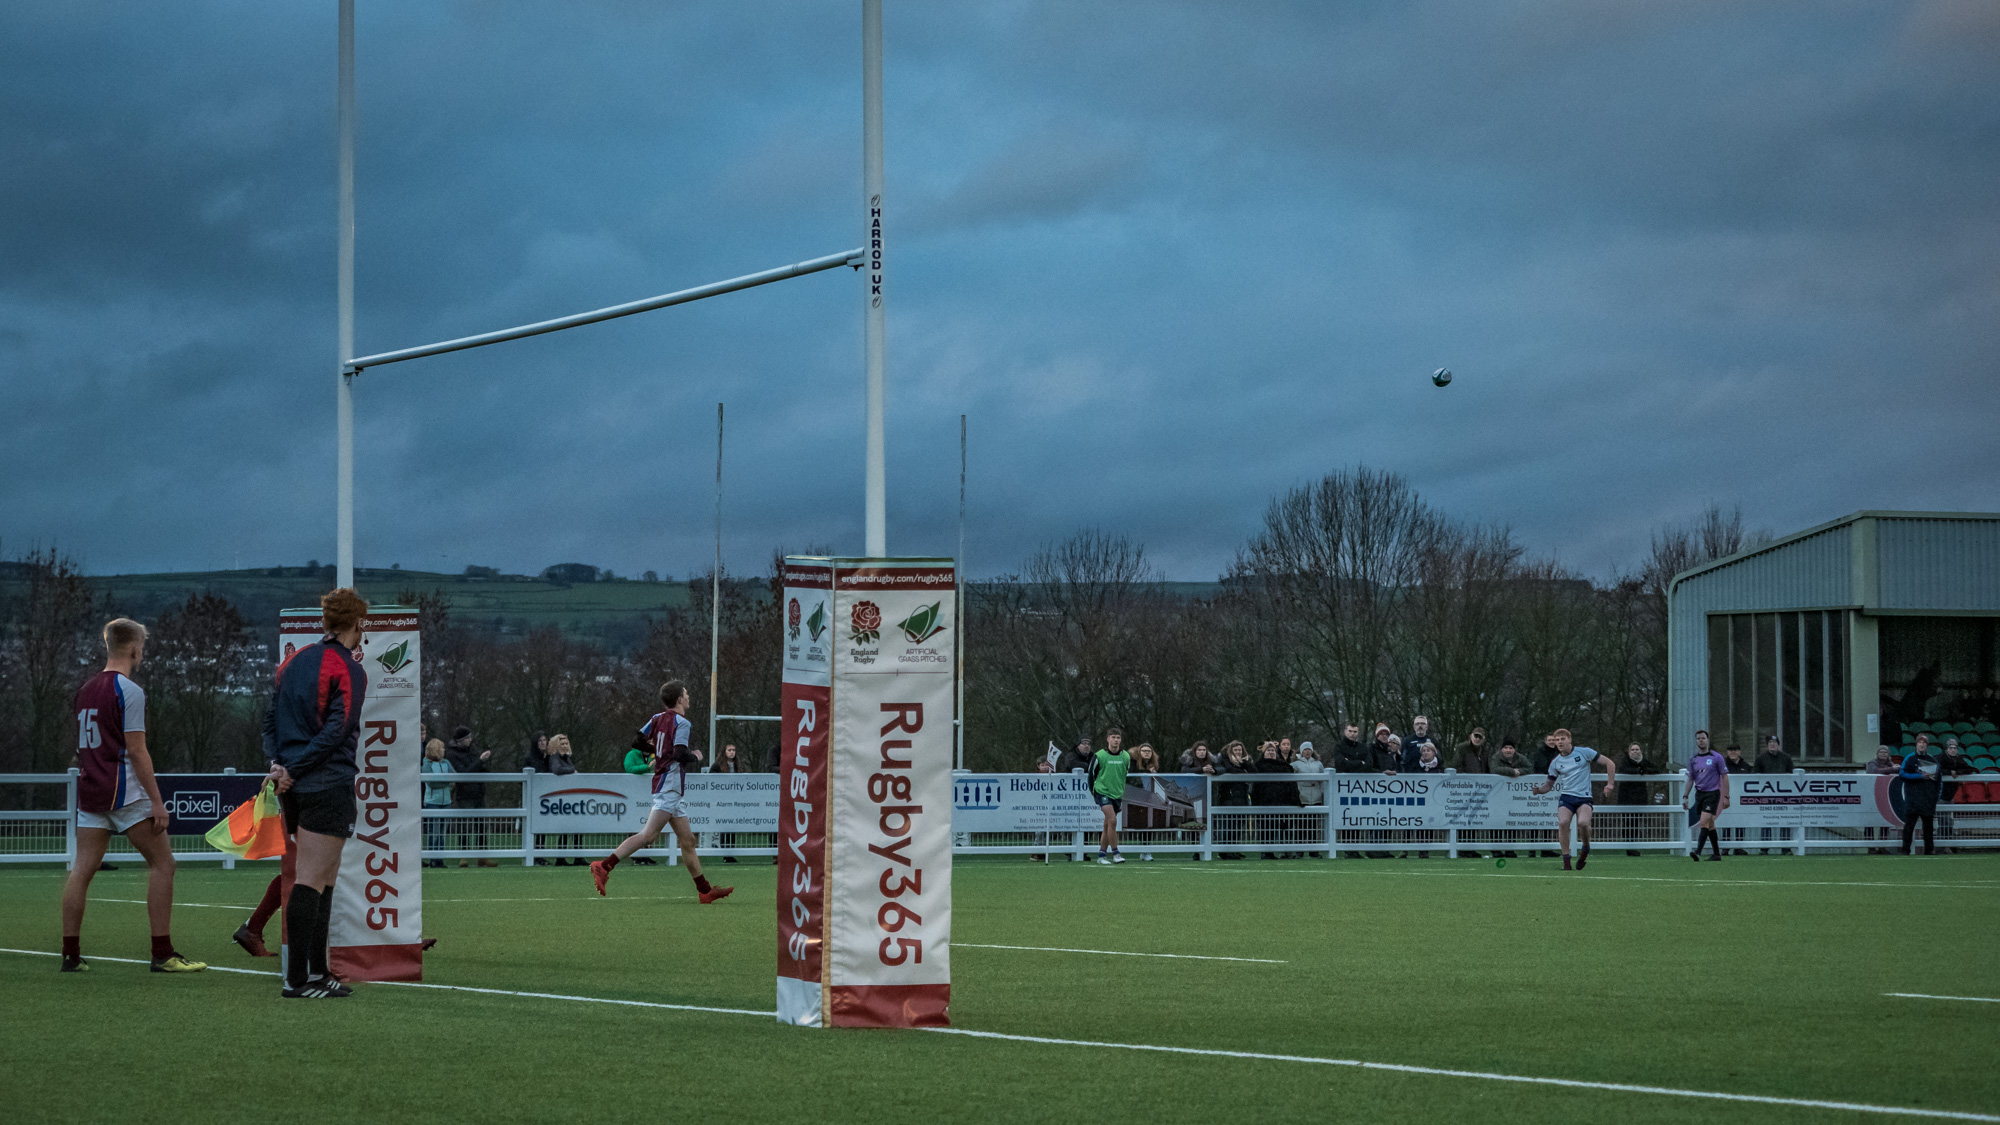 Think this was the only kick he missed but I quite like this shot with the wider view